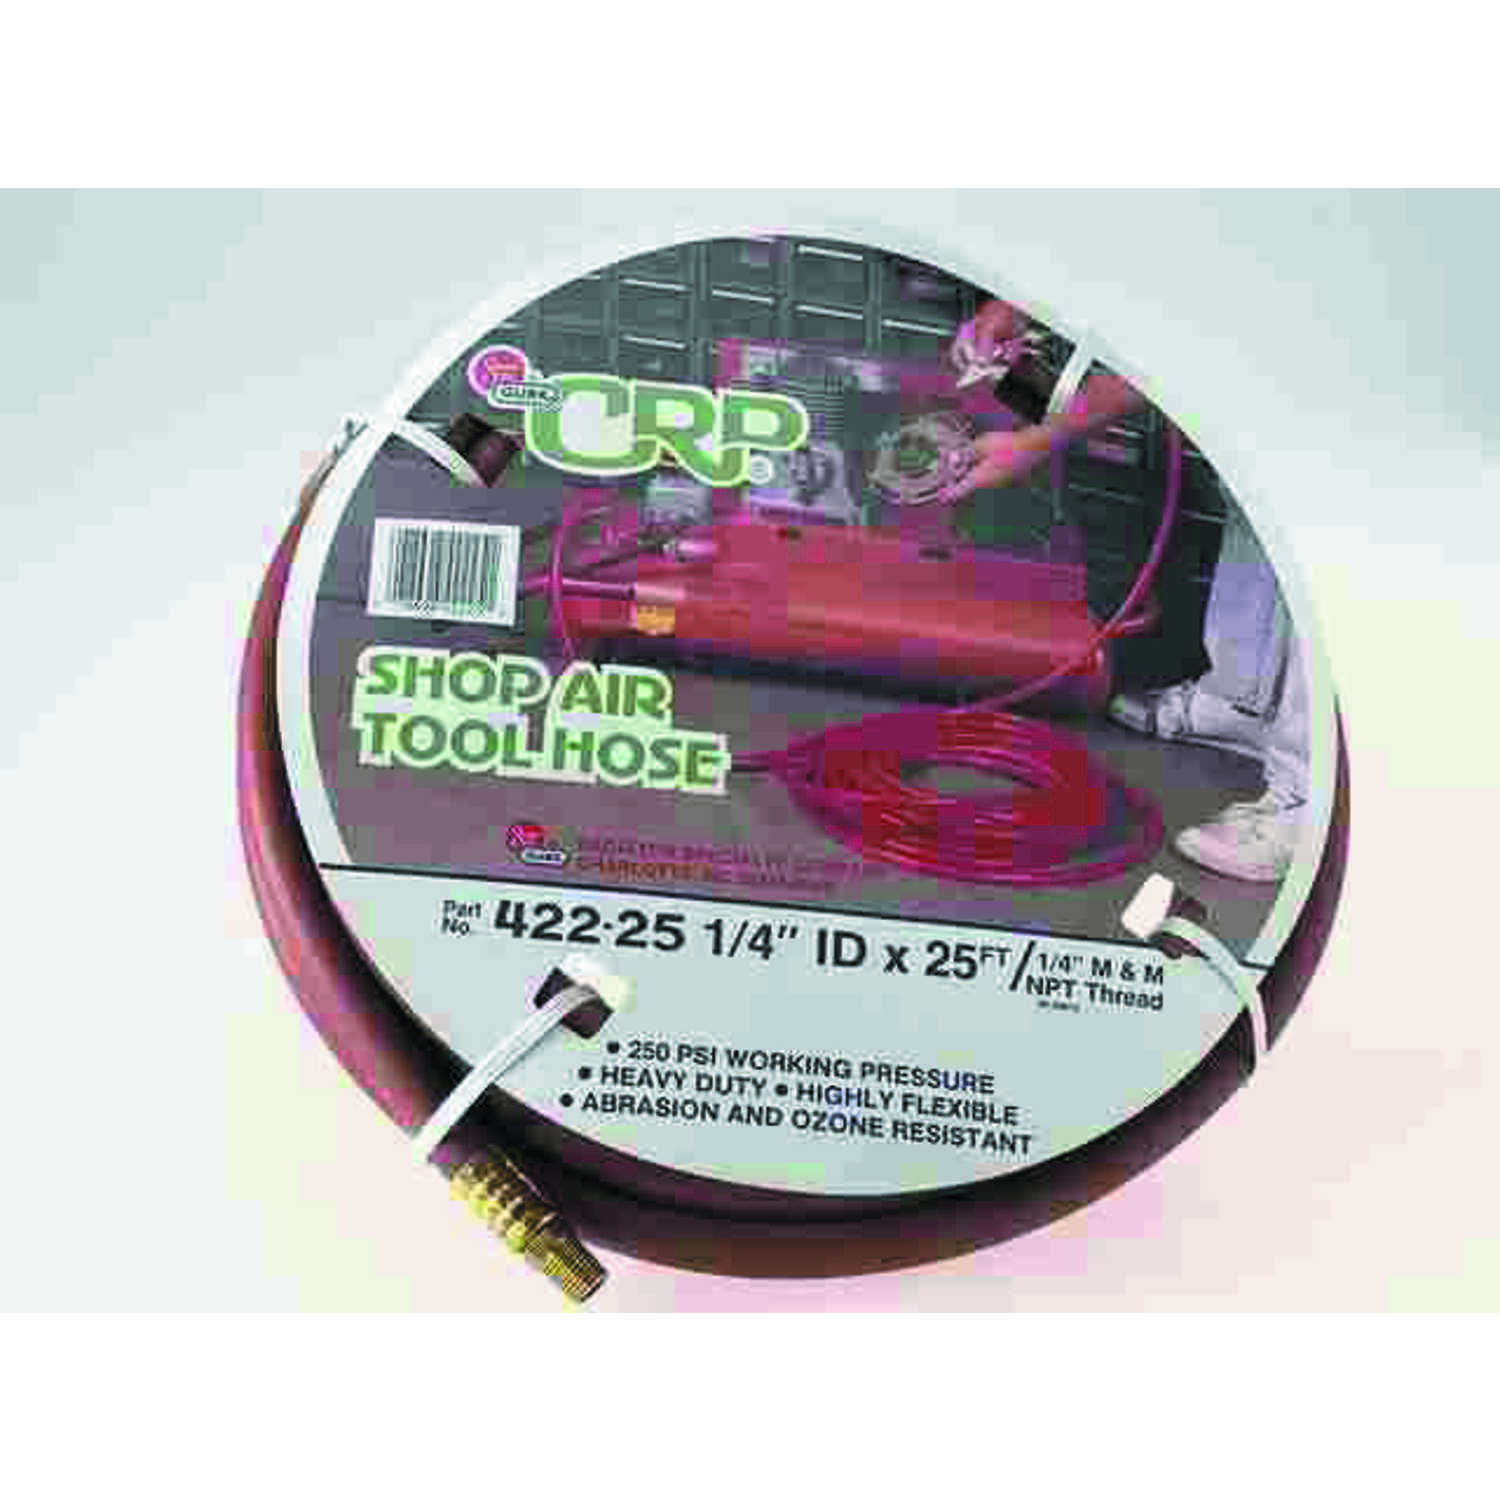 Thermoid  25 ft. L x 1/4 in.  Shop Air Tool Hose  EPDM Rubber  250 psi Red